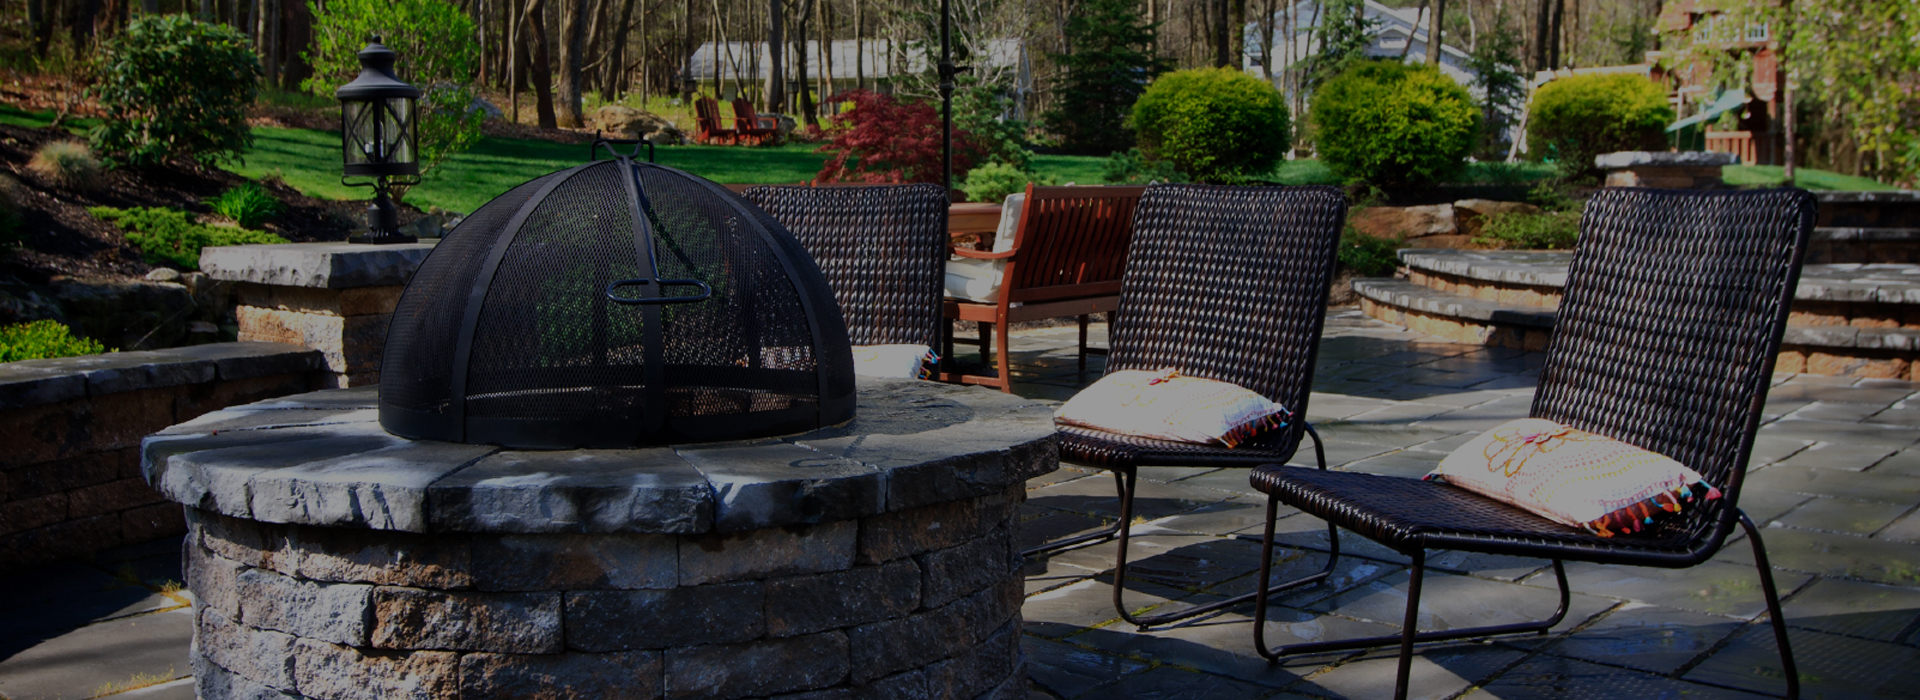 firepit with wicker furniture